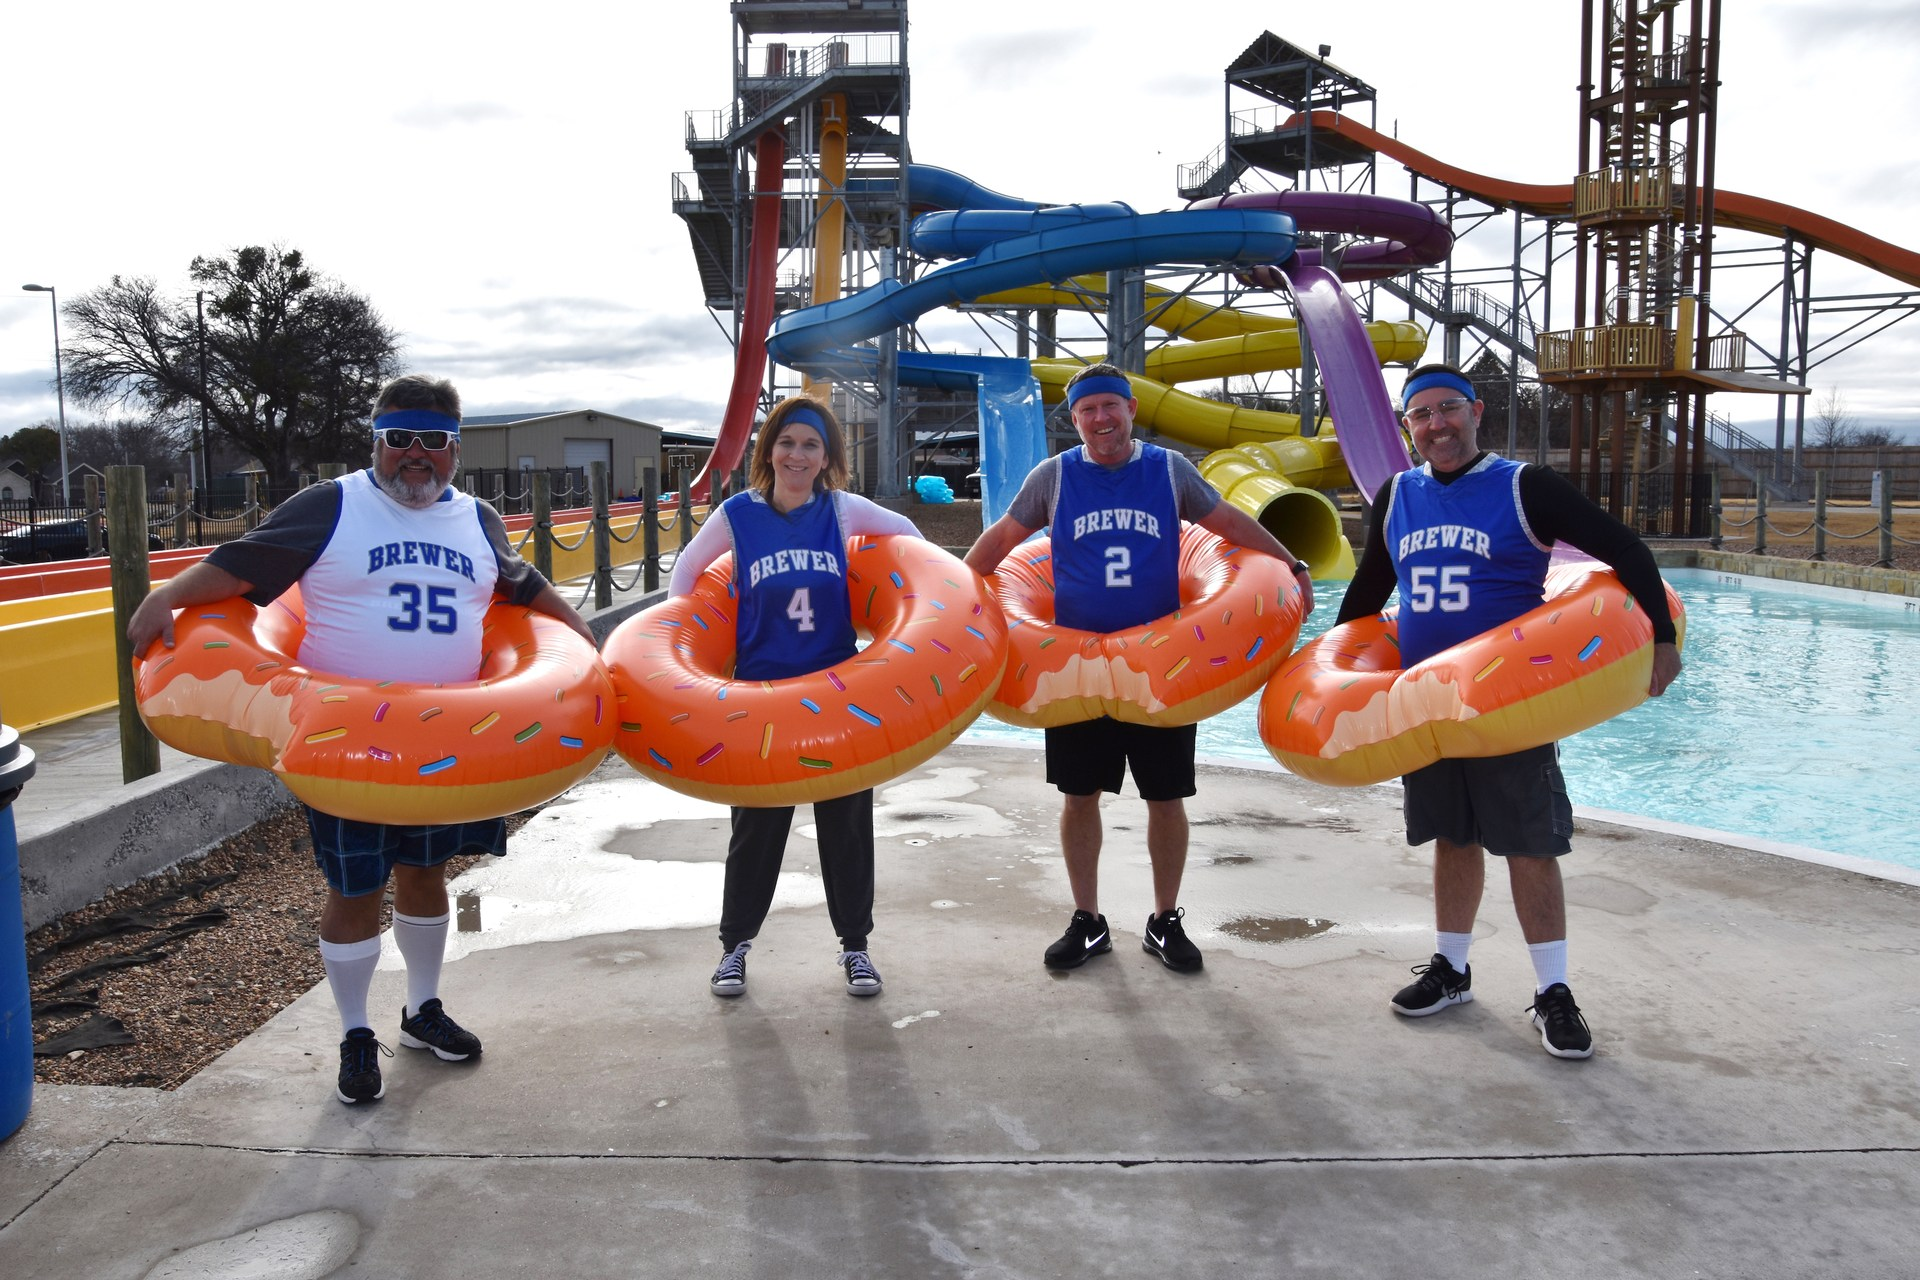 The Dunkin' Donuts team took the plunge during the BRRRewer Bear Plunge on Jan. 27.